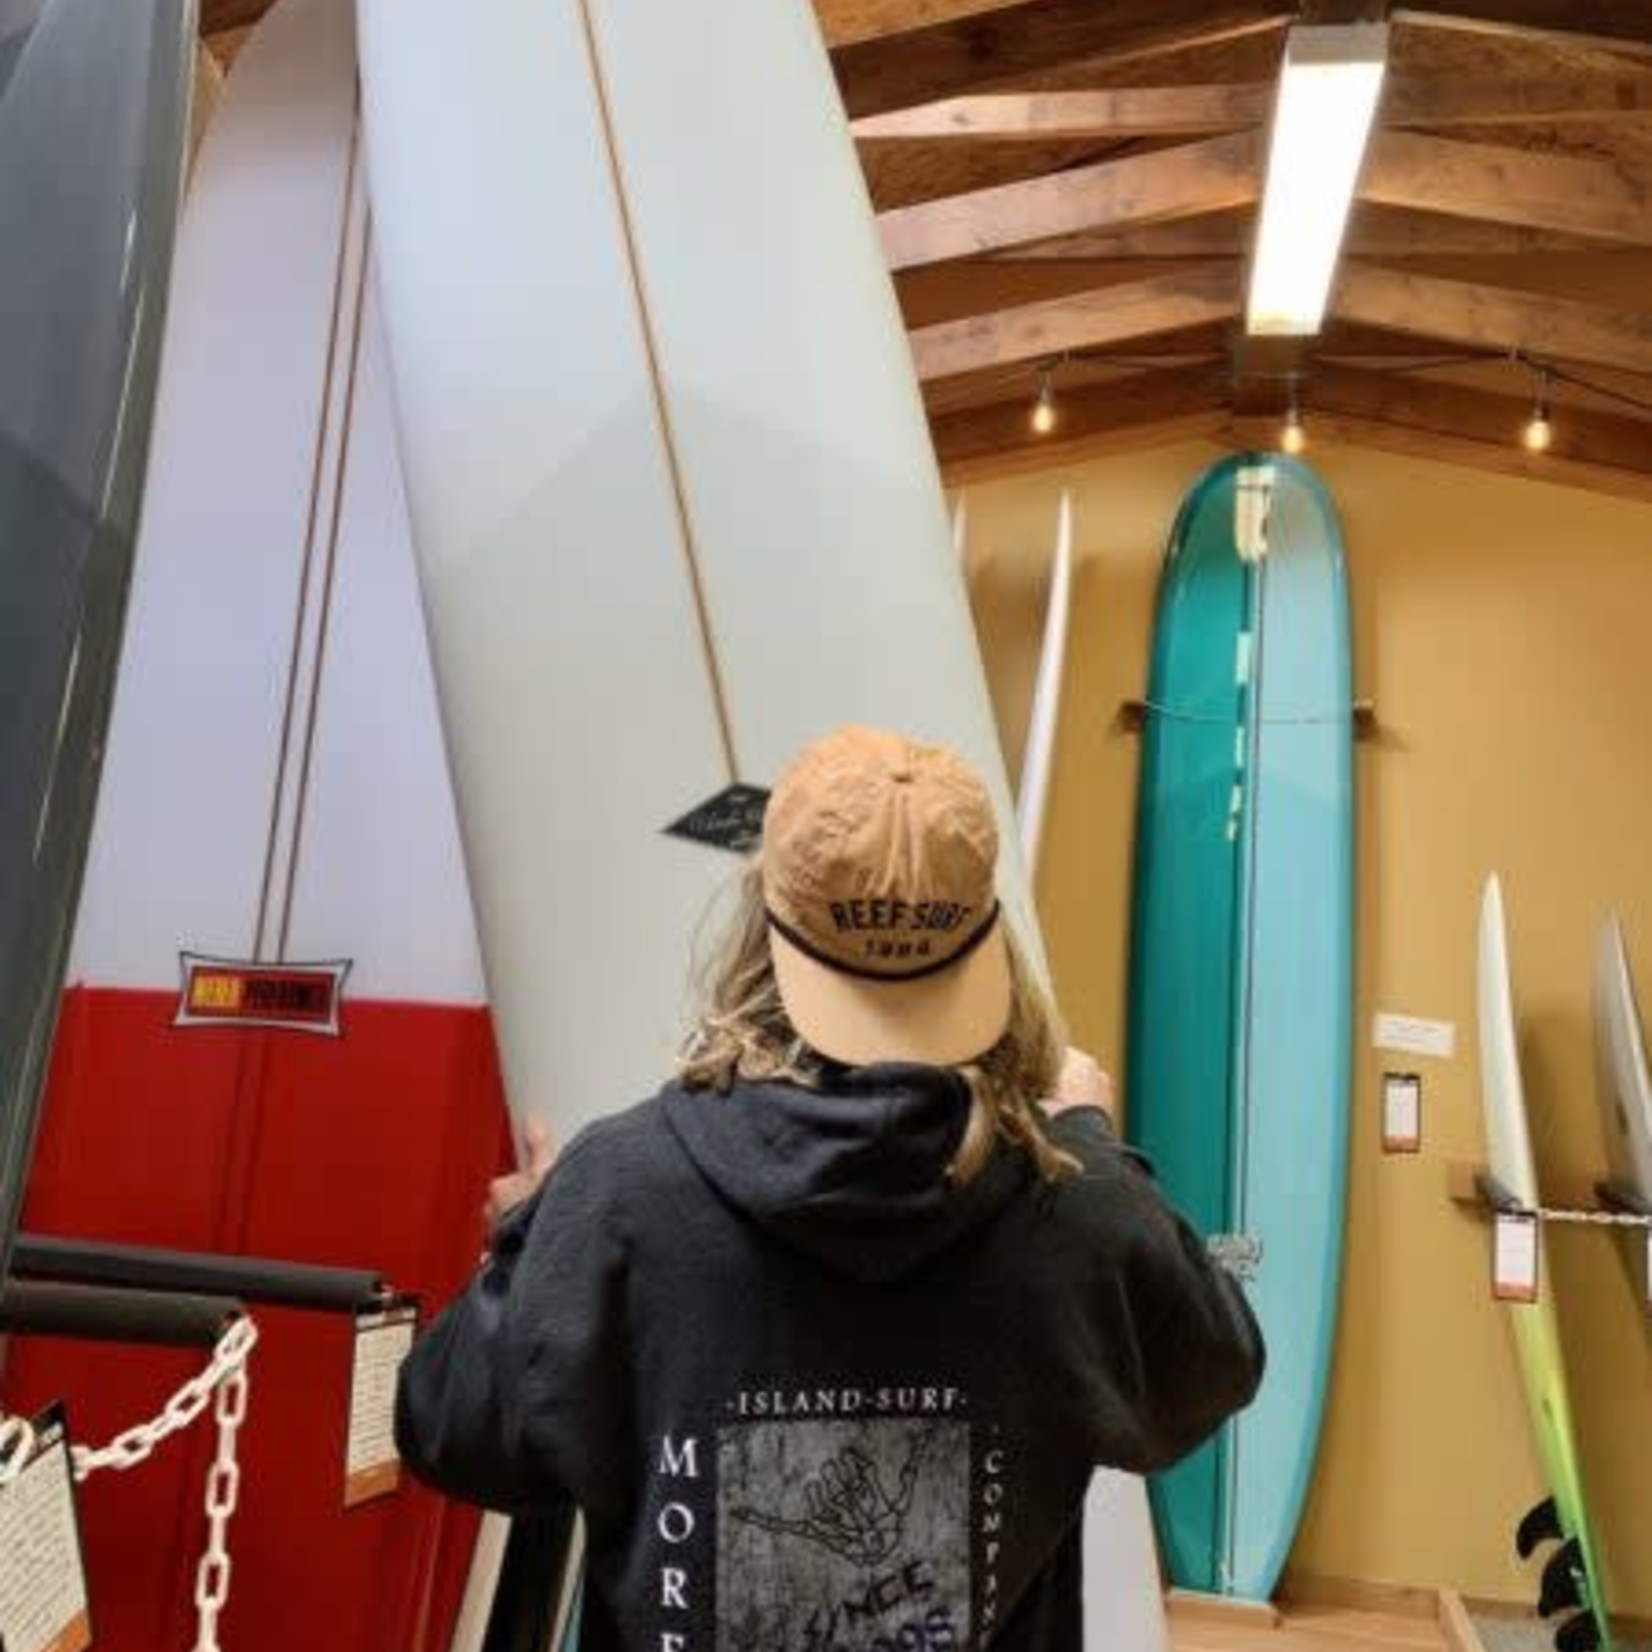 Island Surf Company Shaka Bones Island Surf Co Hoody by: Independent.